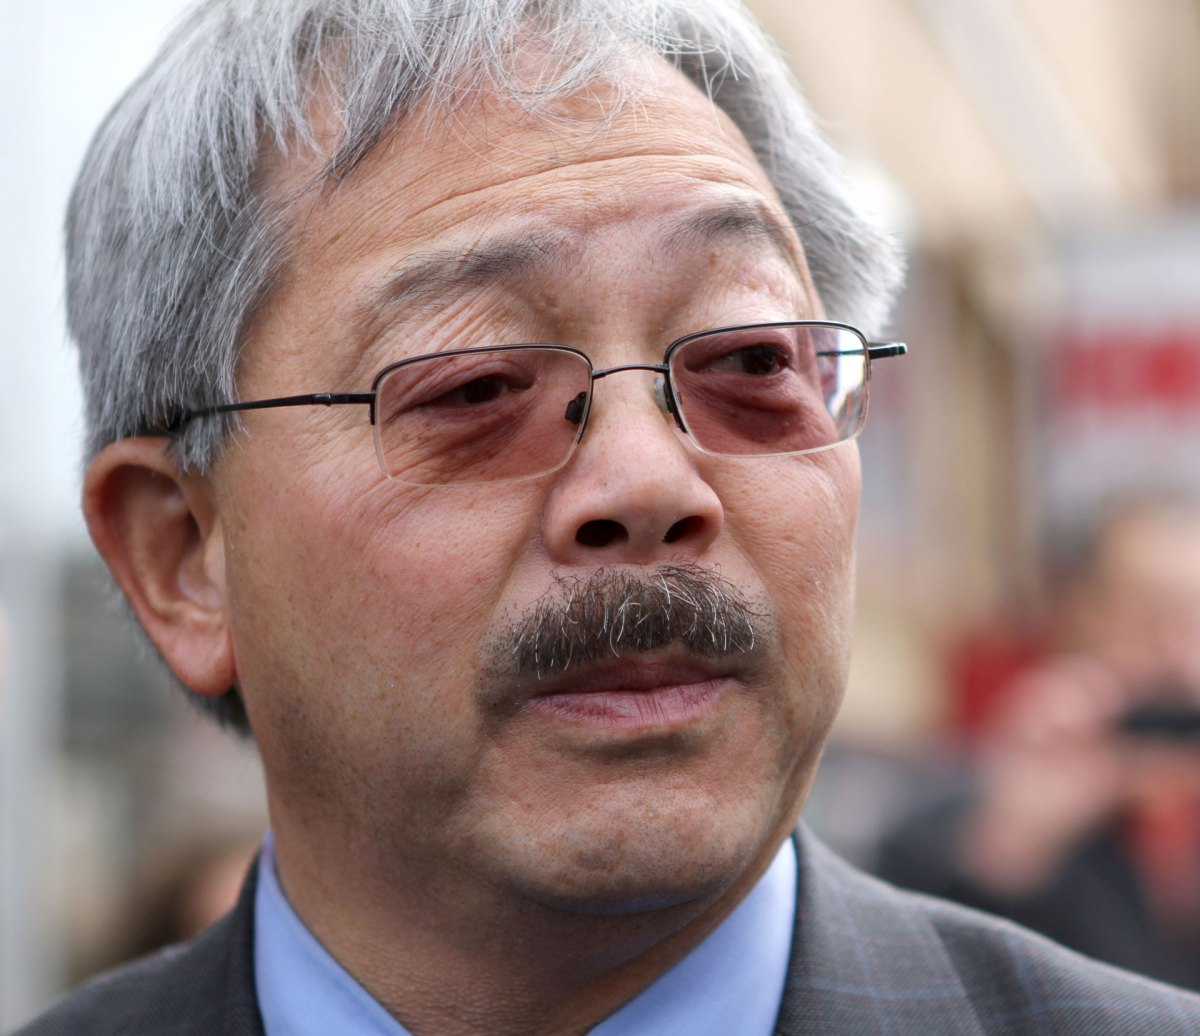 3 Former Fundraisers for Mayor Ed Lee Charged With Bribery, Money Laundering